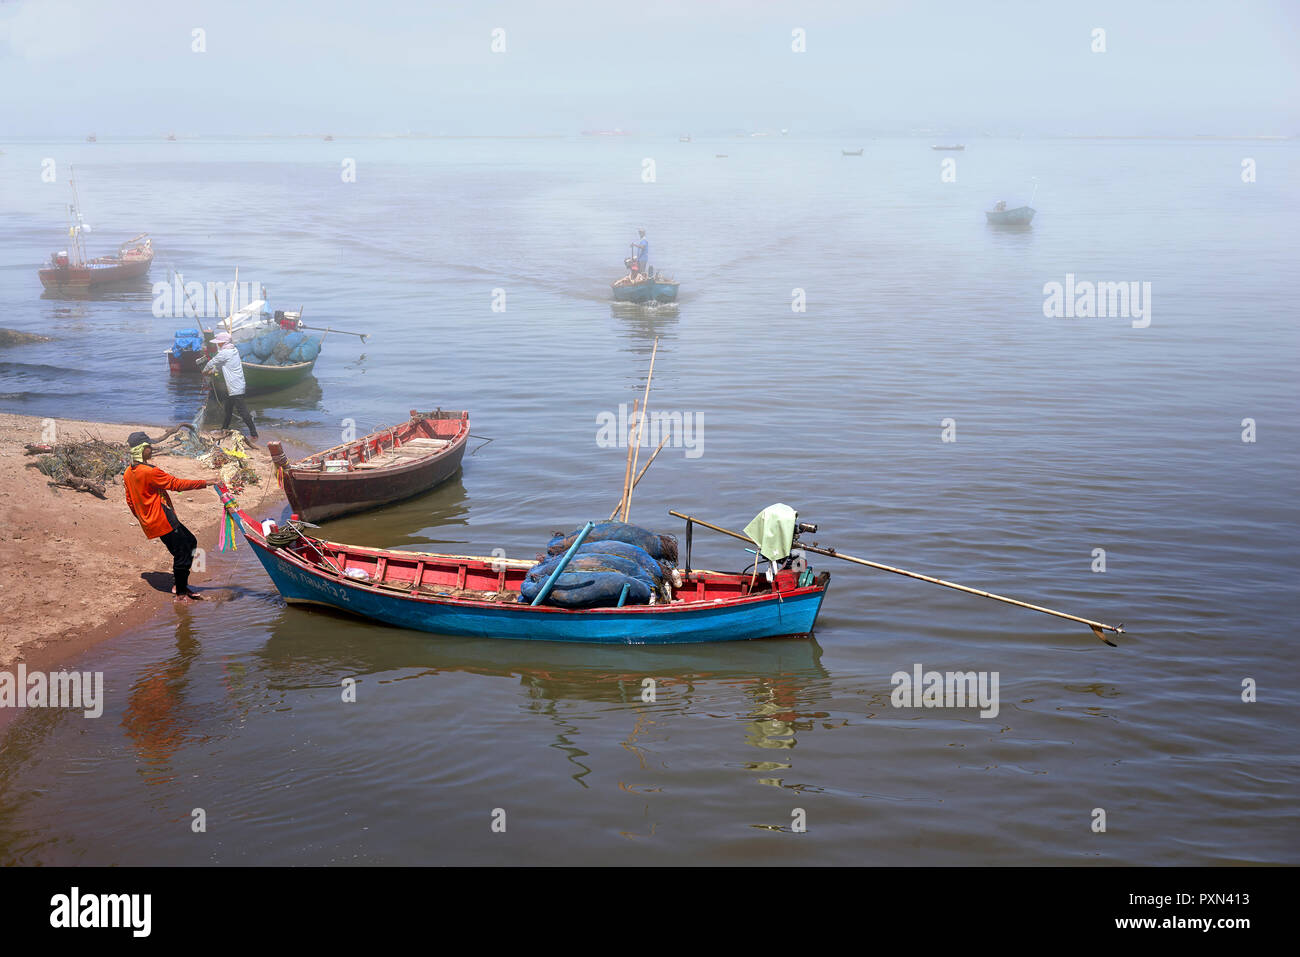 Fog descending at a fishing port with boats heading home to moor. Thailand Southeast Asia - Stock Image